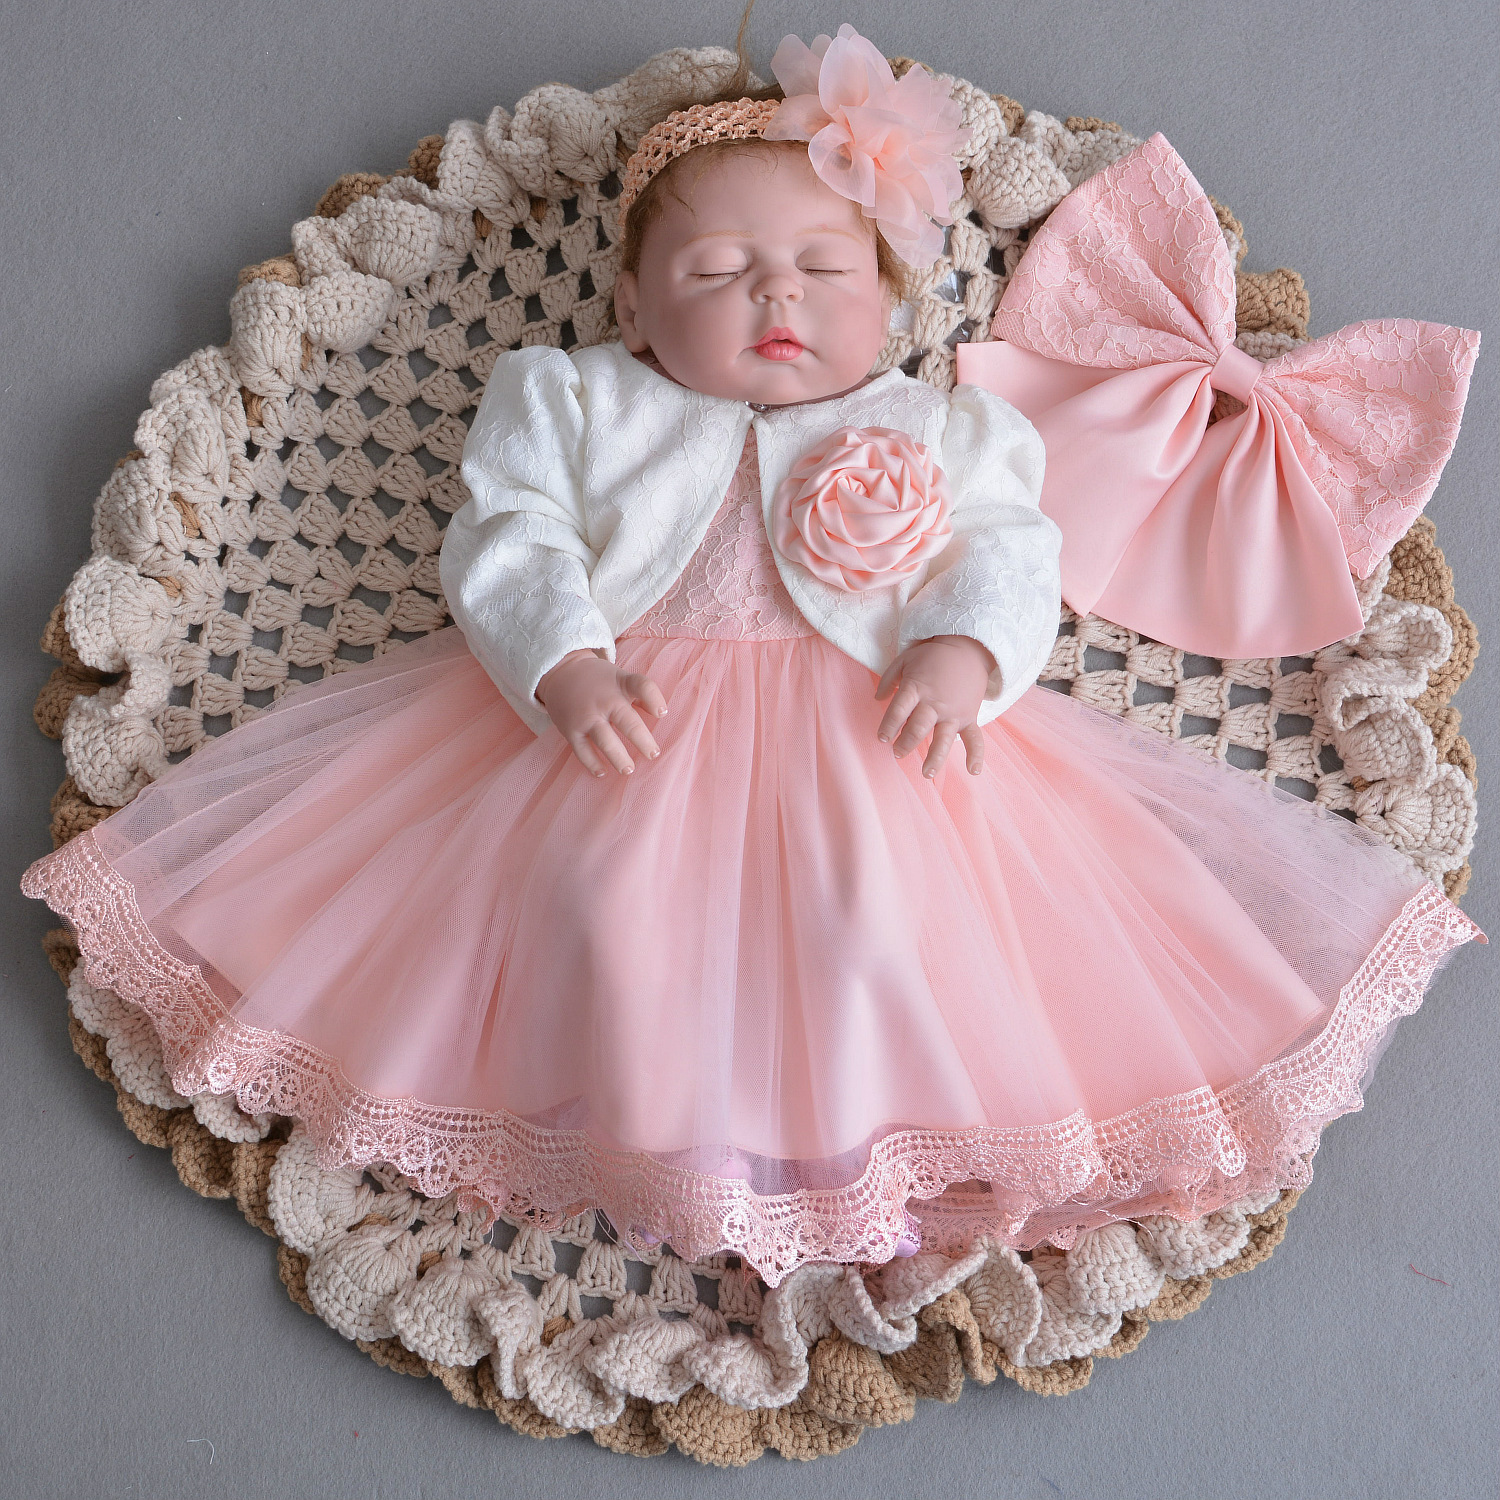 2017 baby infant newborn girl winter princess dress + headband+ outwear 3pcs set new born 1 2 year birthday party tutu dress crown princess 1 year girl birthday dress headband infant lace tutu set toddler party outfits vestido cotton baby girl clothes